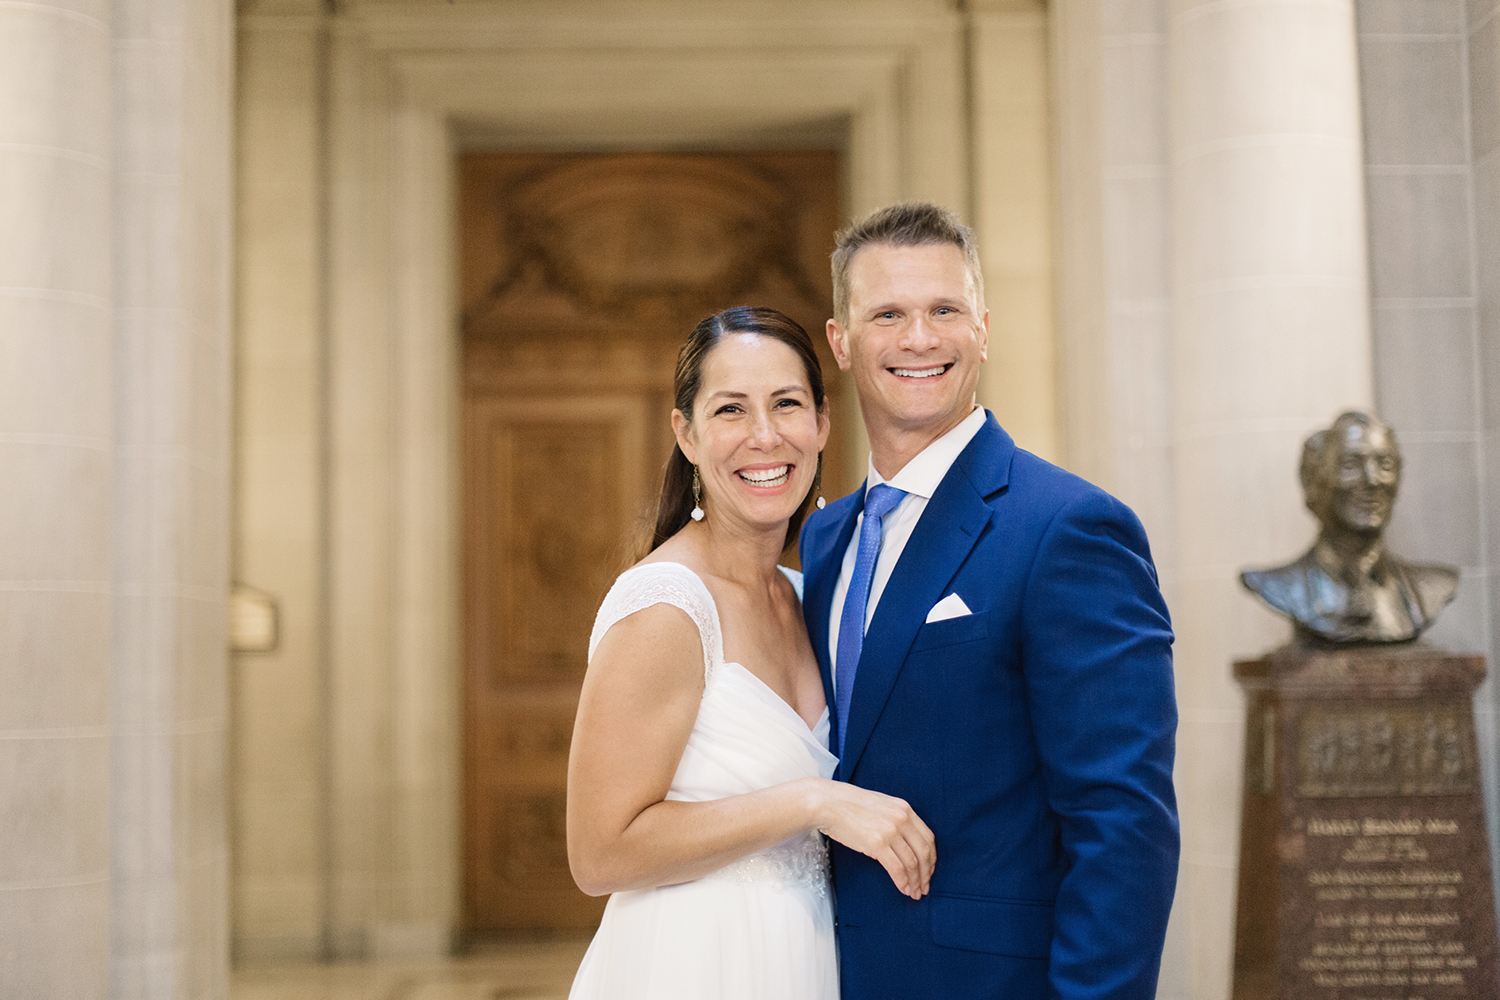 Bride and groom married in San Francisco City Hall.